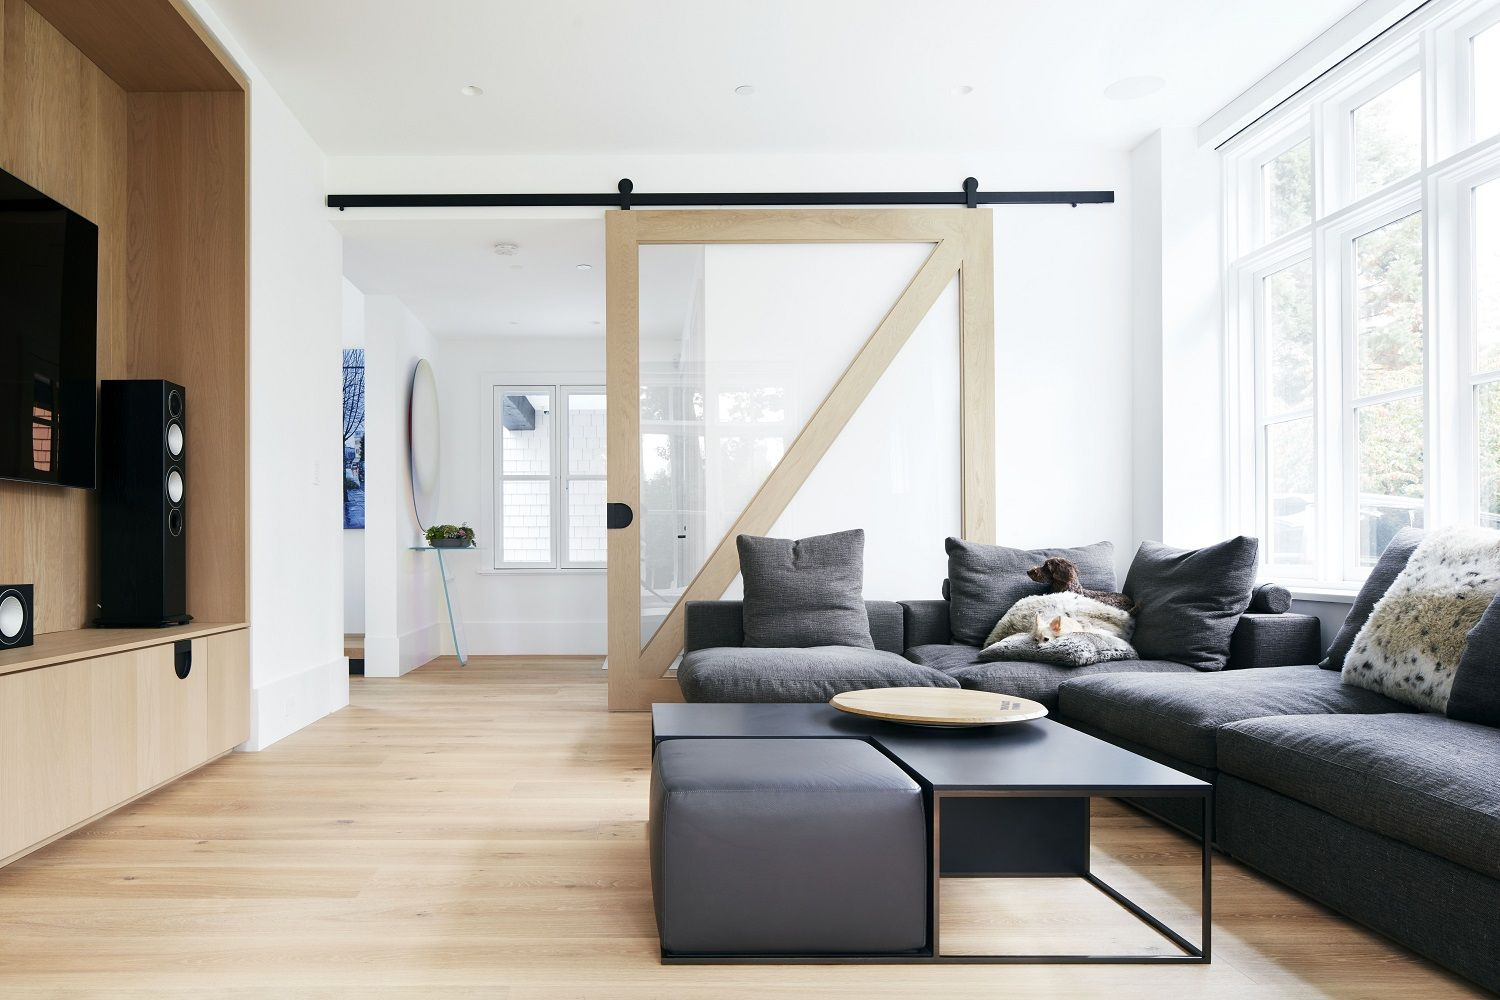 Vancouver, Canada Hakwood Pure Flooring in this modern